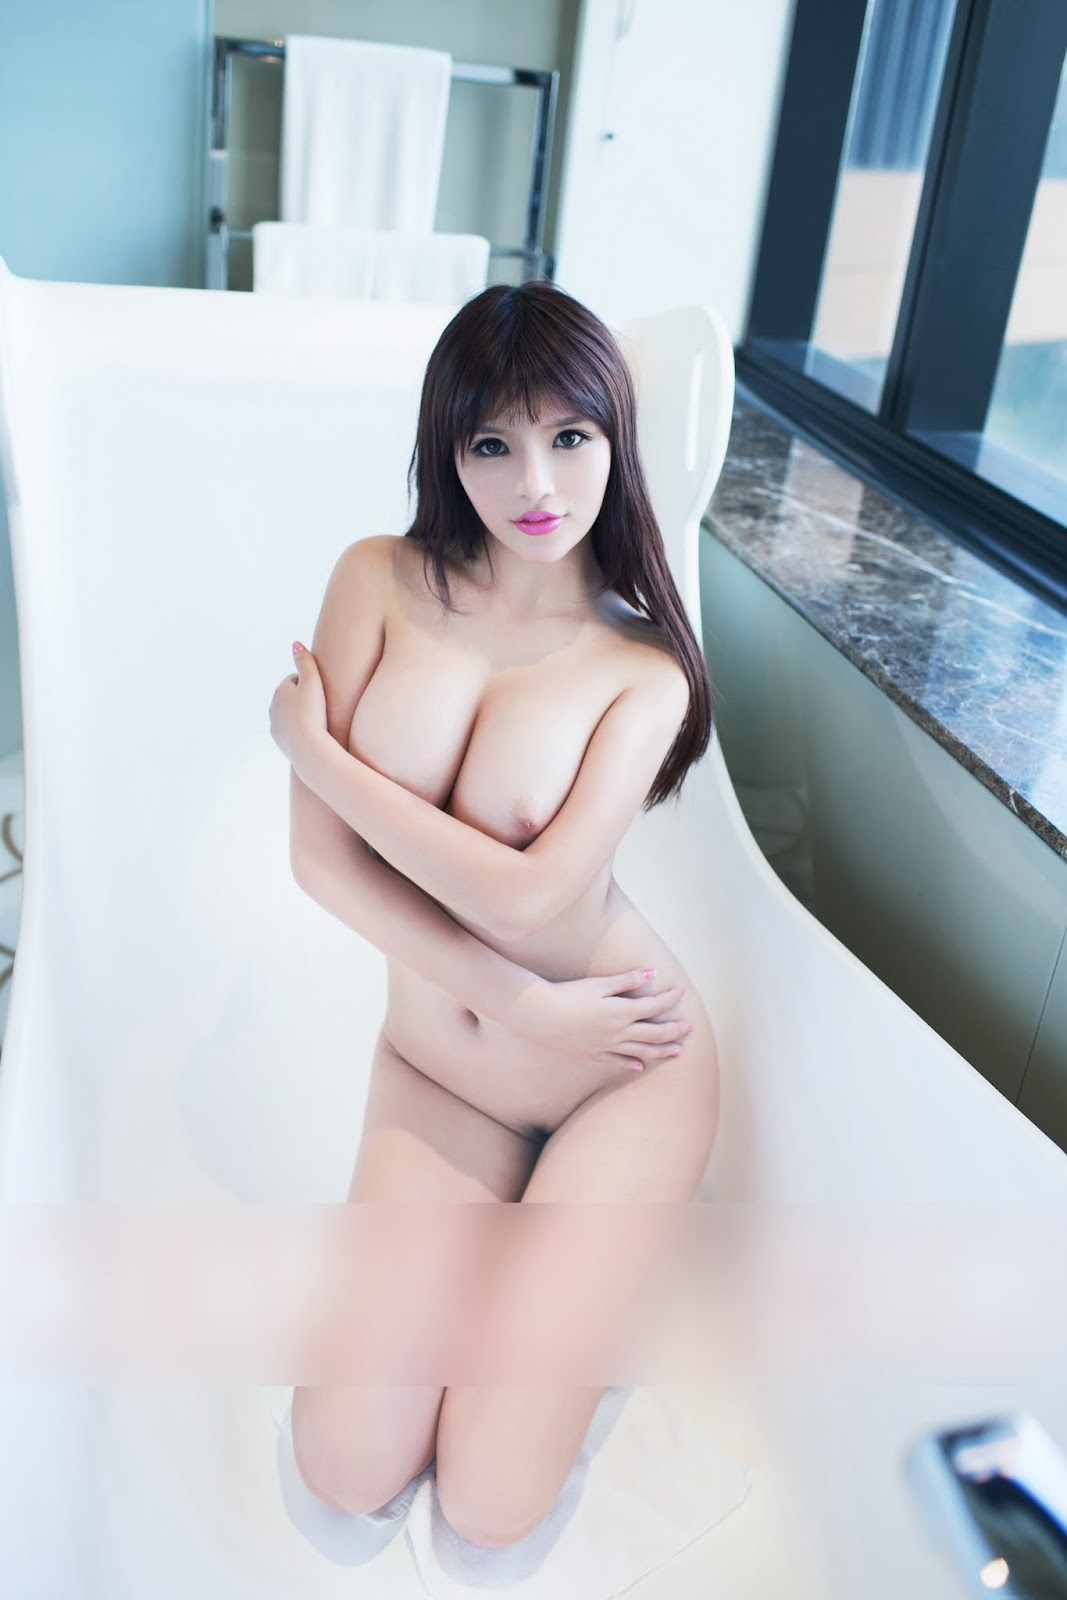 39 - Hot Girl Big TIts TUIGIRL NO.38 Asian Naked